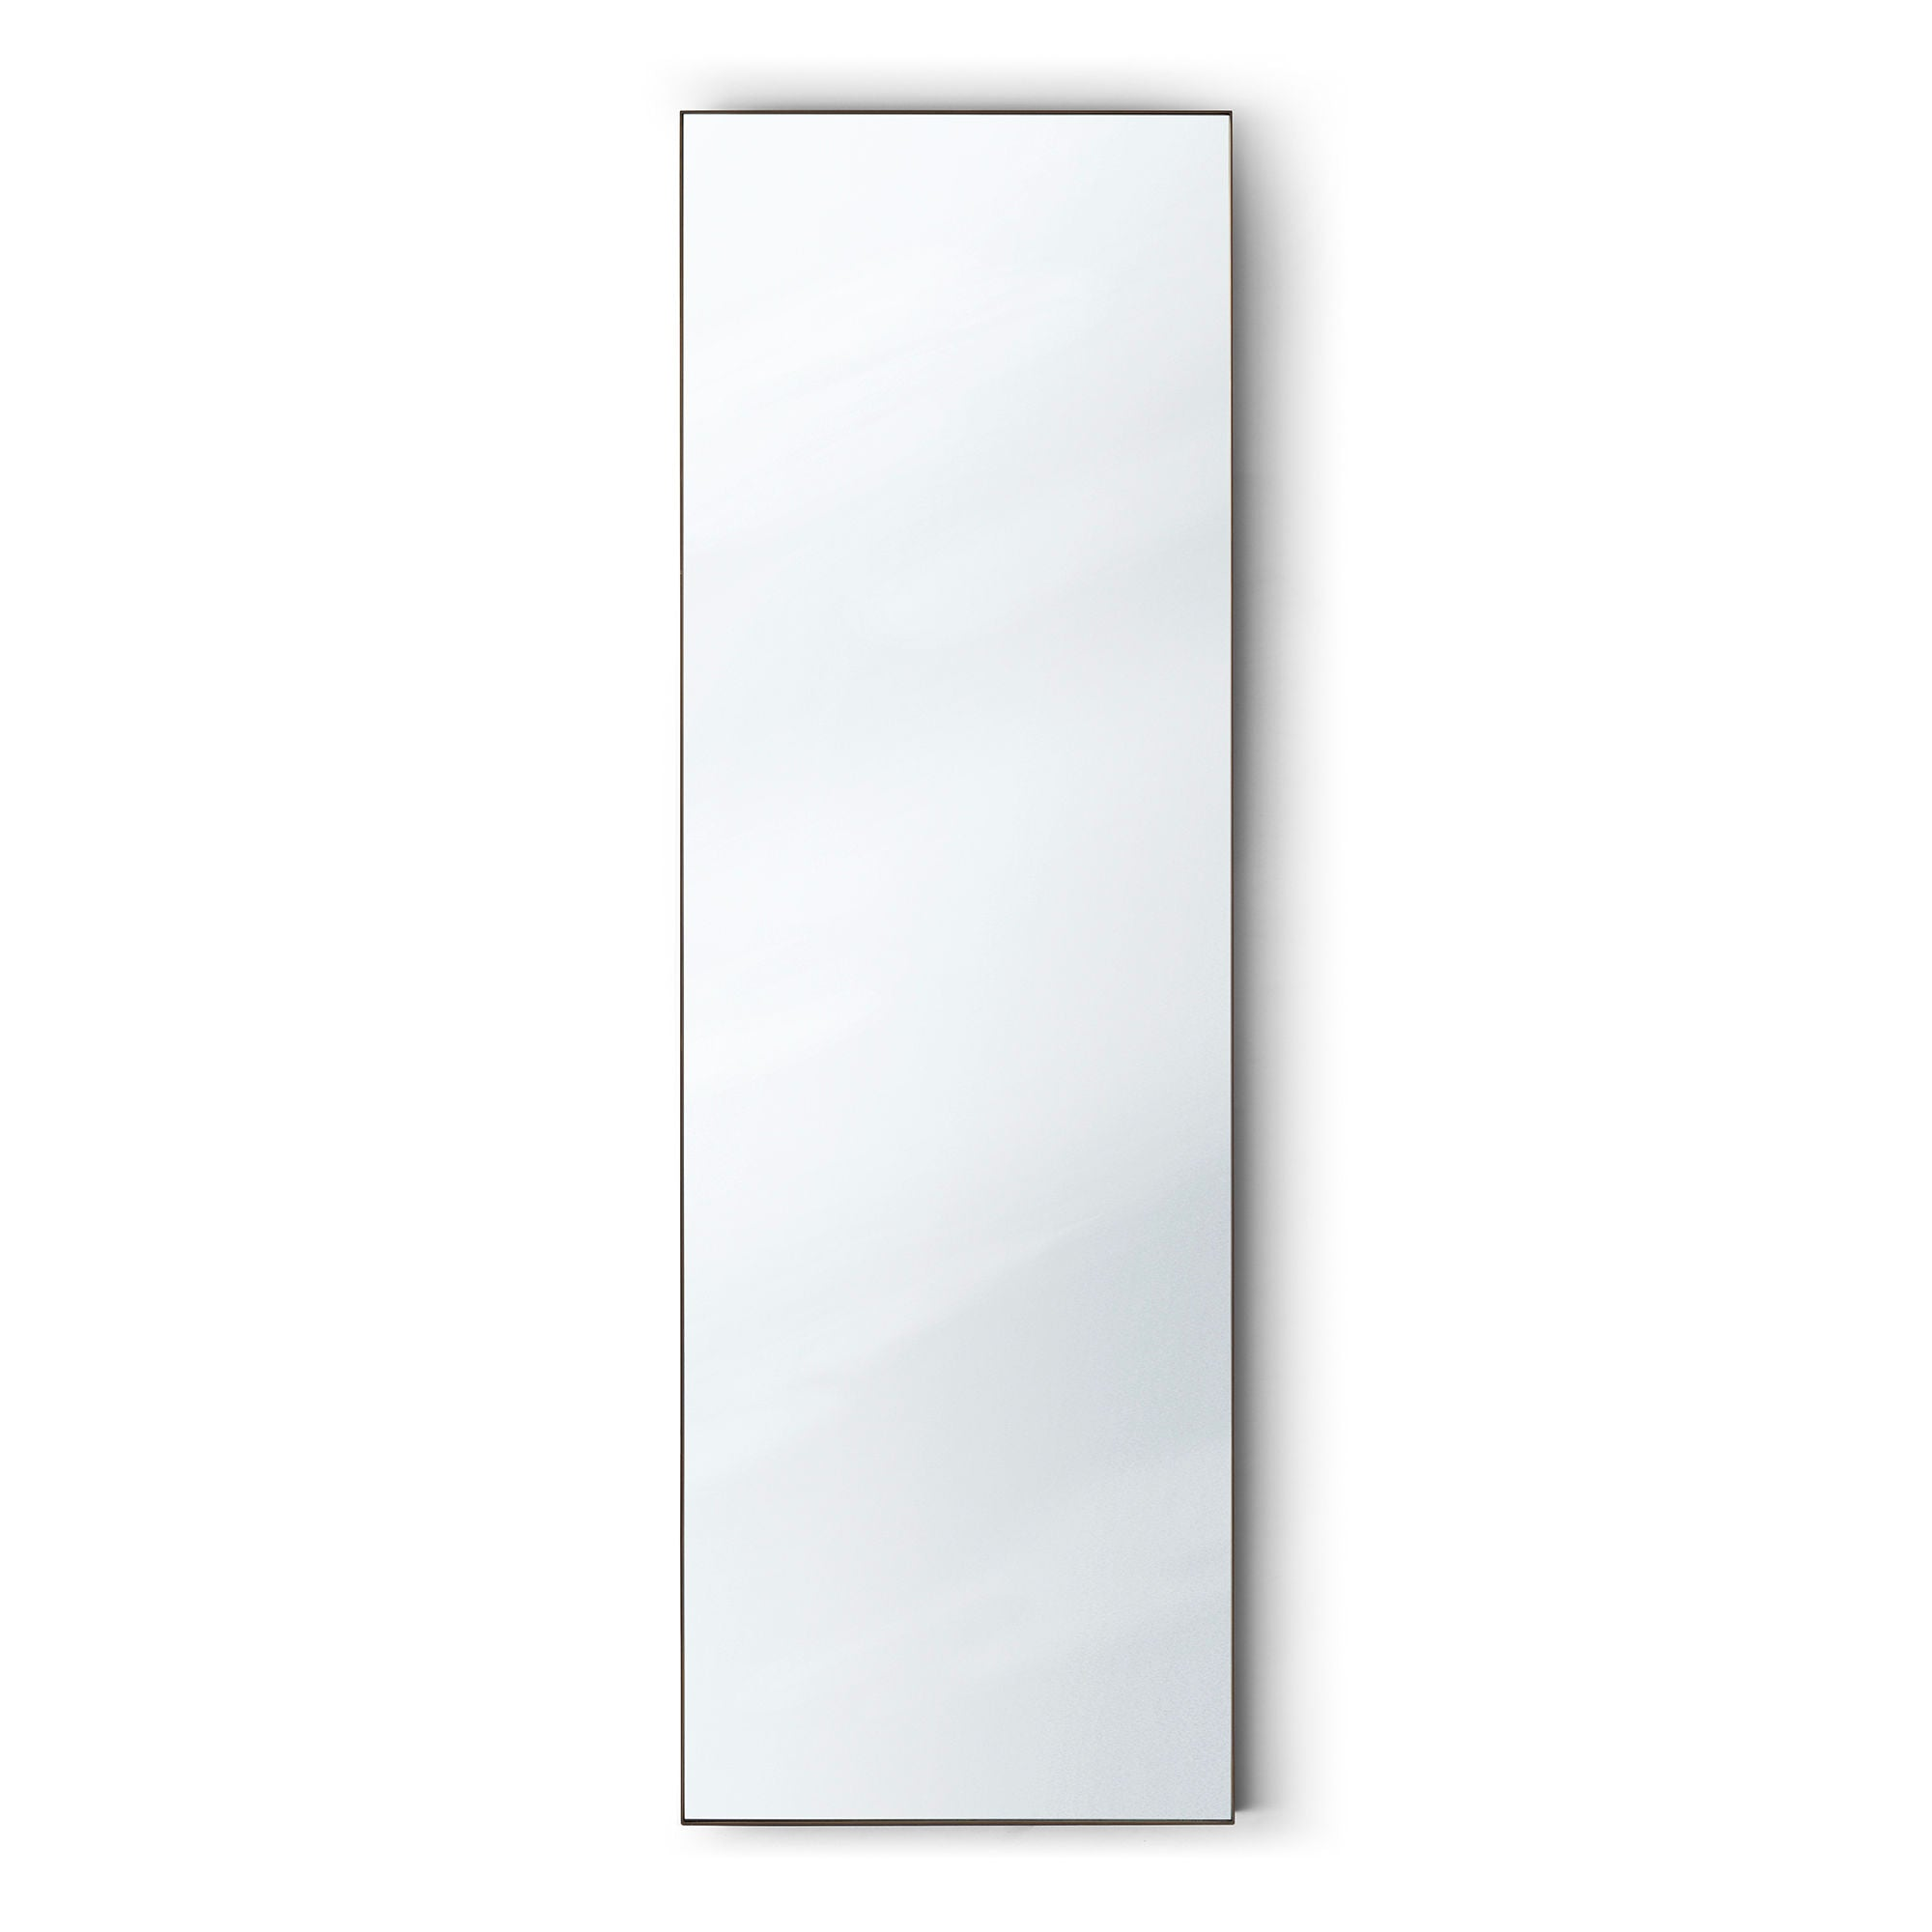 &Tradition SC50 Amore mirror 60 * 190cm